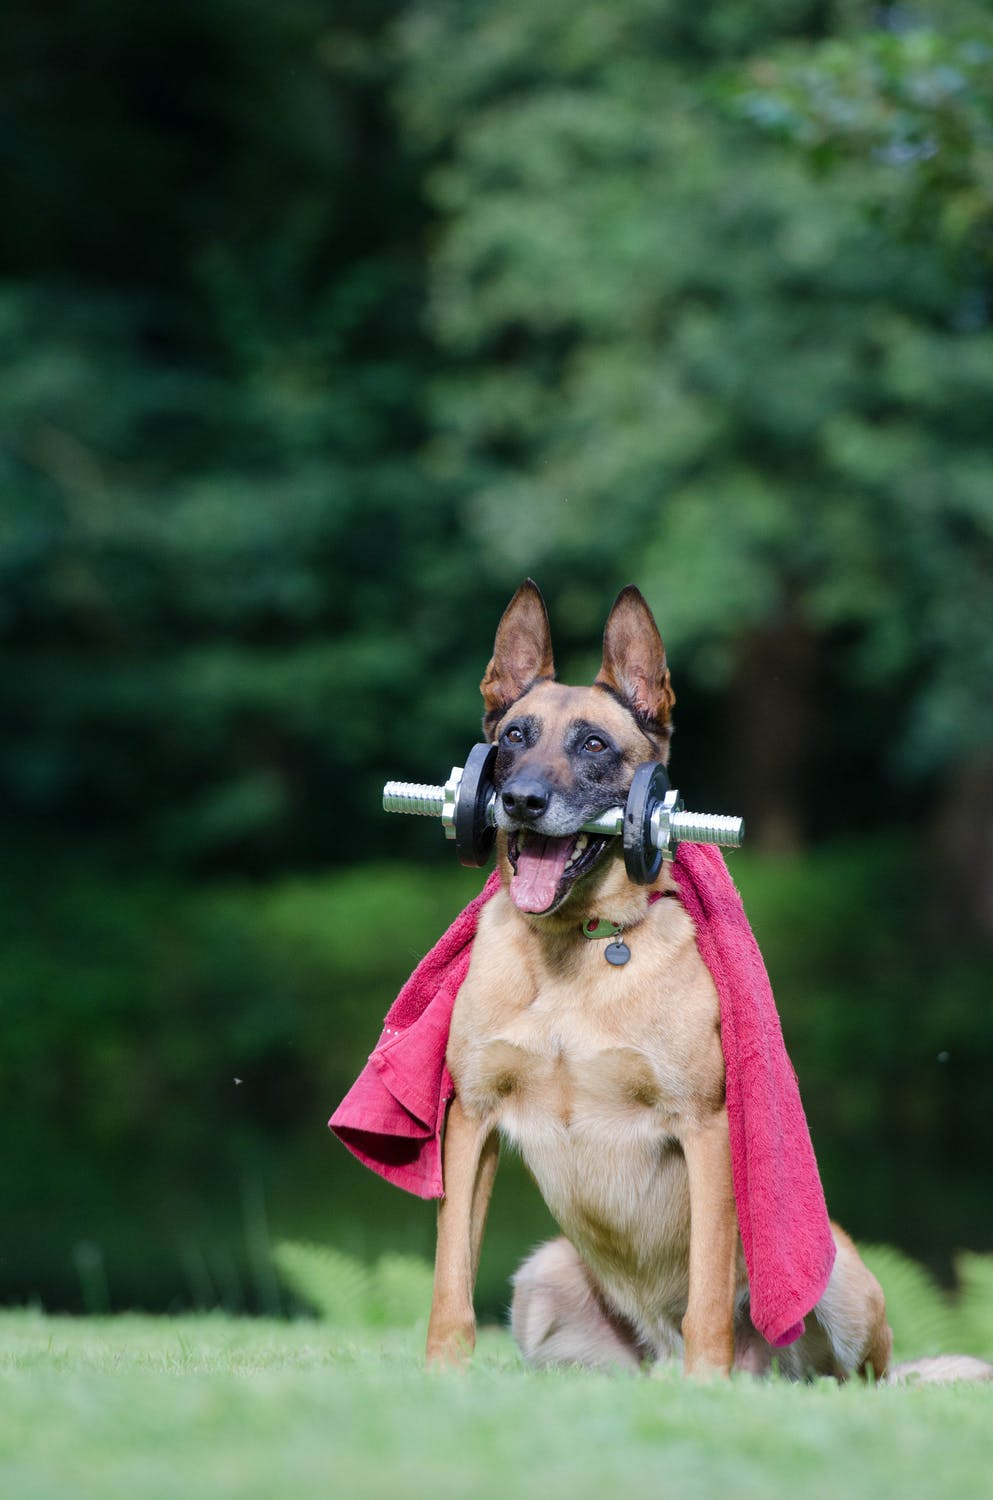 Dog calorie calculator: an active dog is a happy dog!